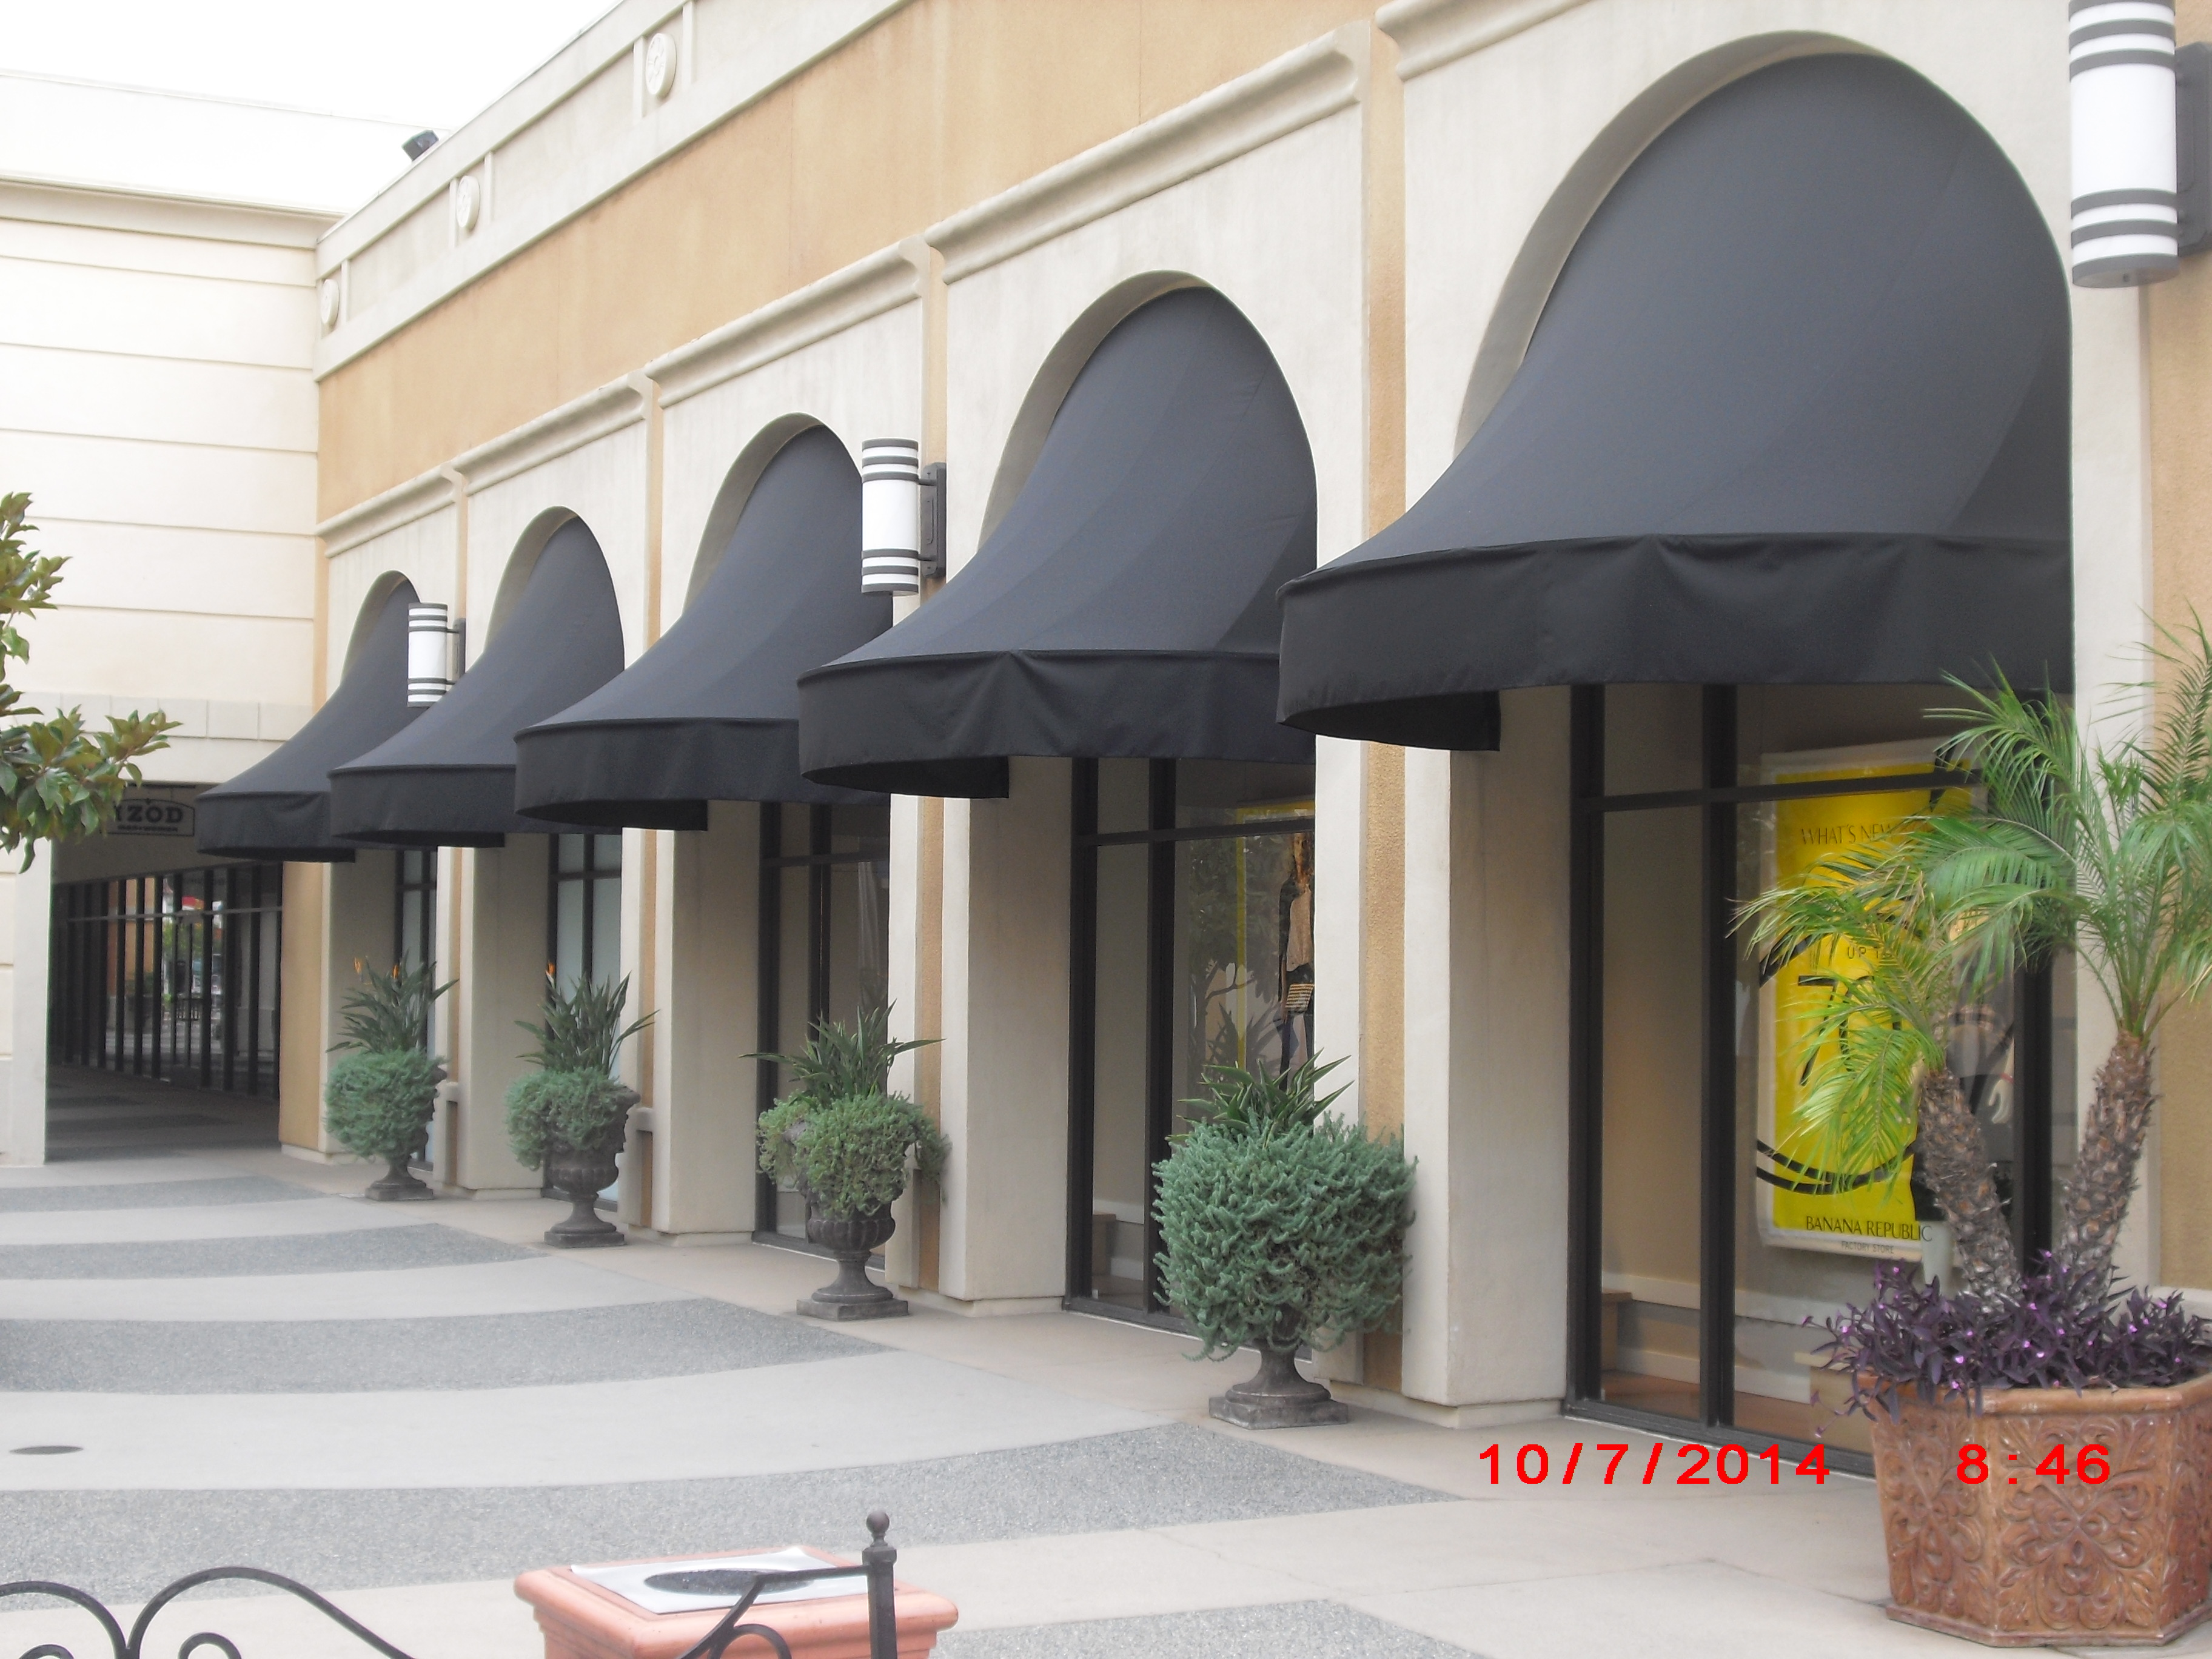 awning commercial chicago awnings and gallery iproview inc miami by manufacturers canopies dome co spear